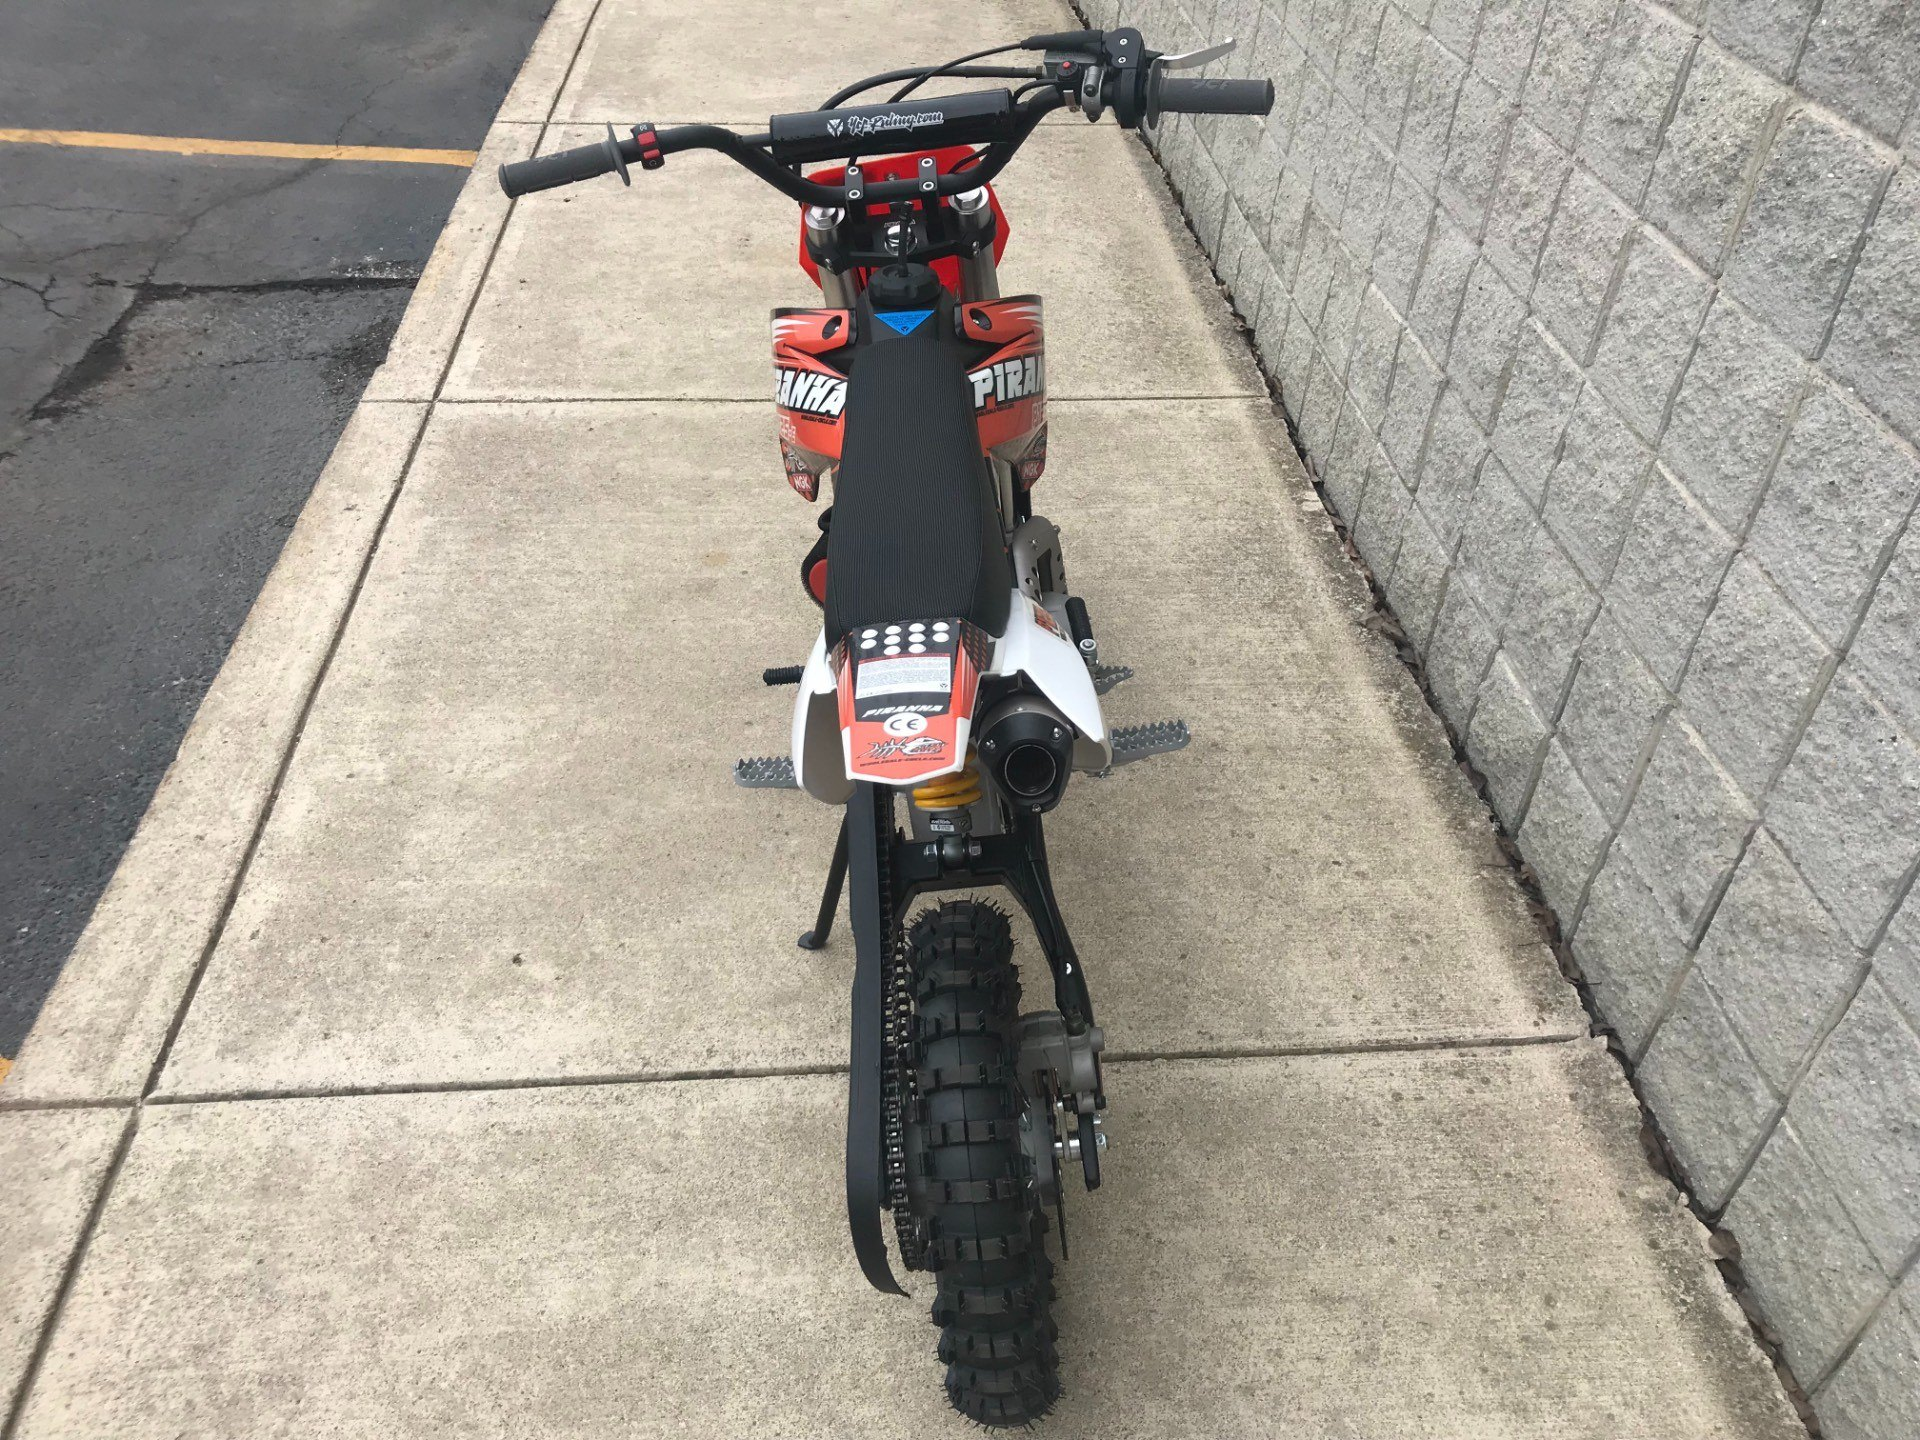 2018 PIRANHA P125E in Monroe, Michigan - Photo 8